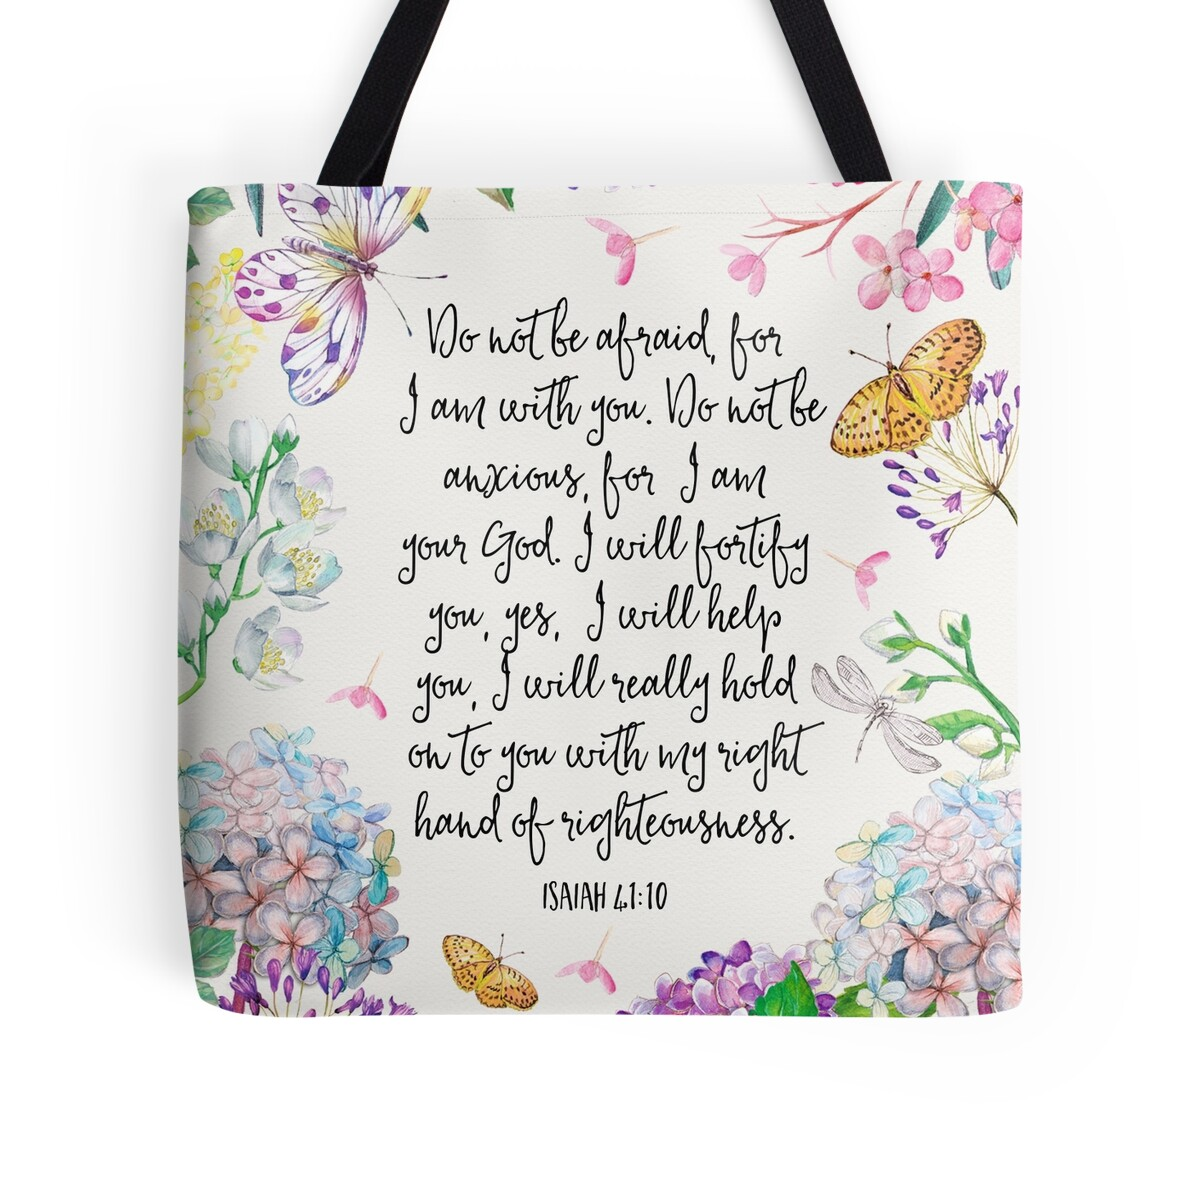 Isaiah 41 10 flowers and butterflies tote bags by jw for Arts and crafts tote bags